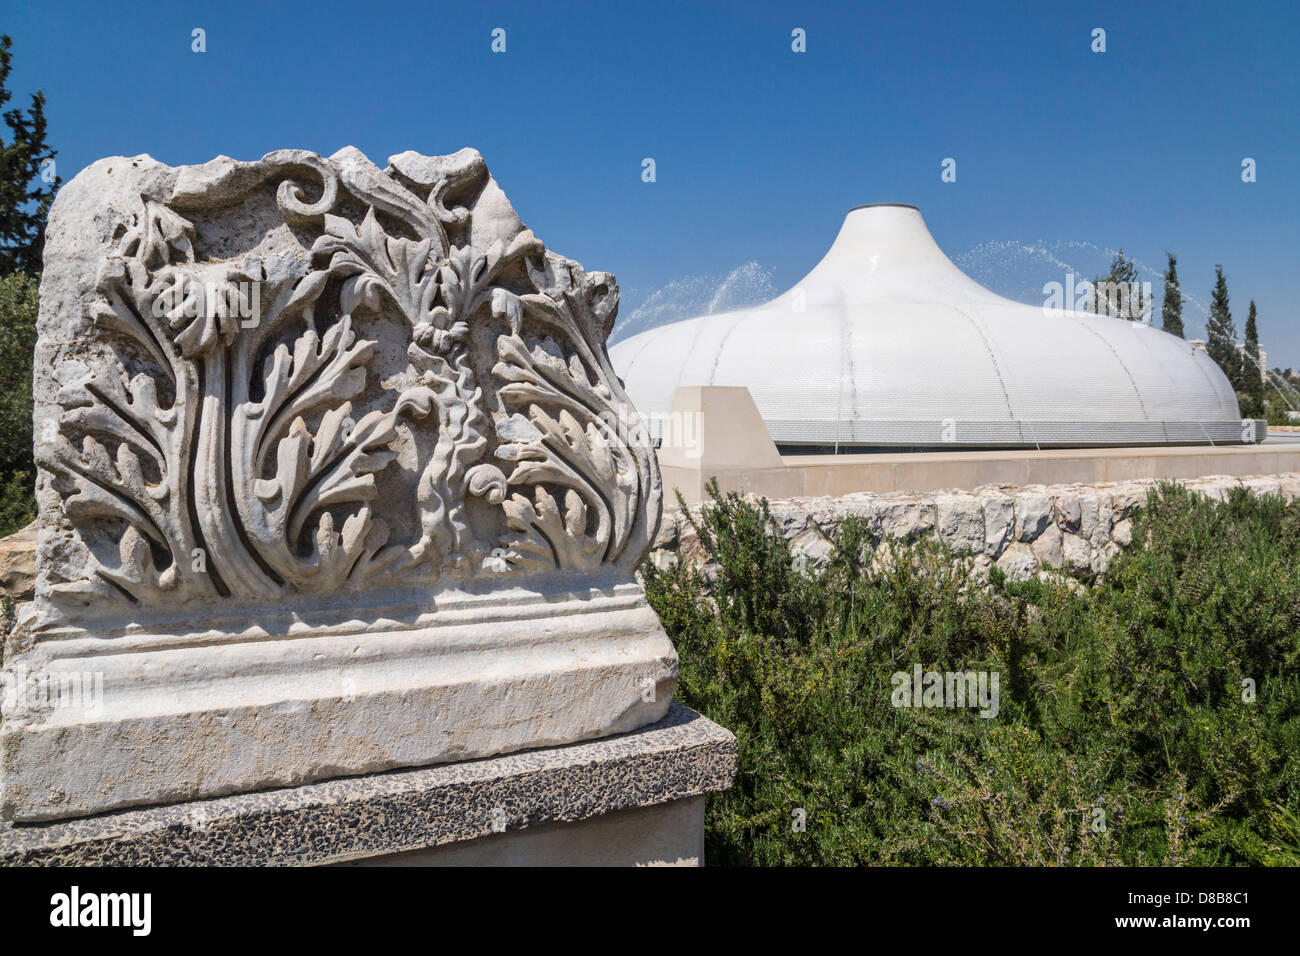 Jerusalem. A Roman pillar in front of the Shrine of the Book, where the dead sea scrolls are stored, in the Israel Stock Photo